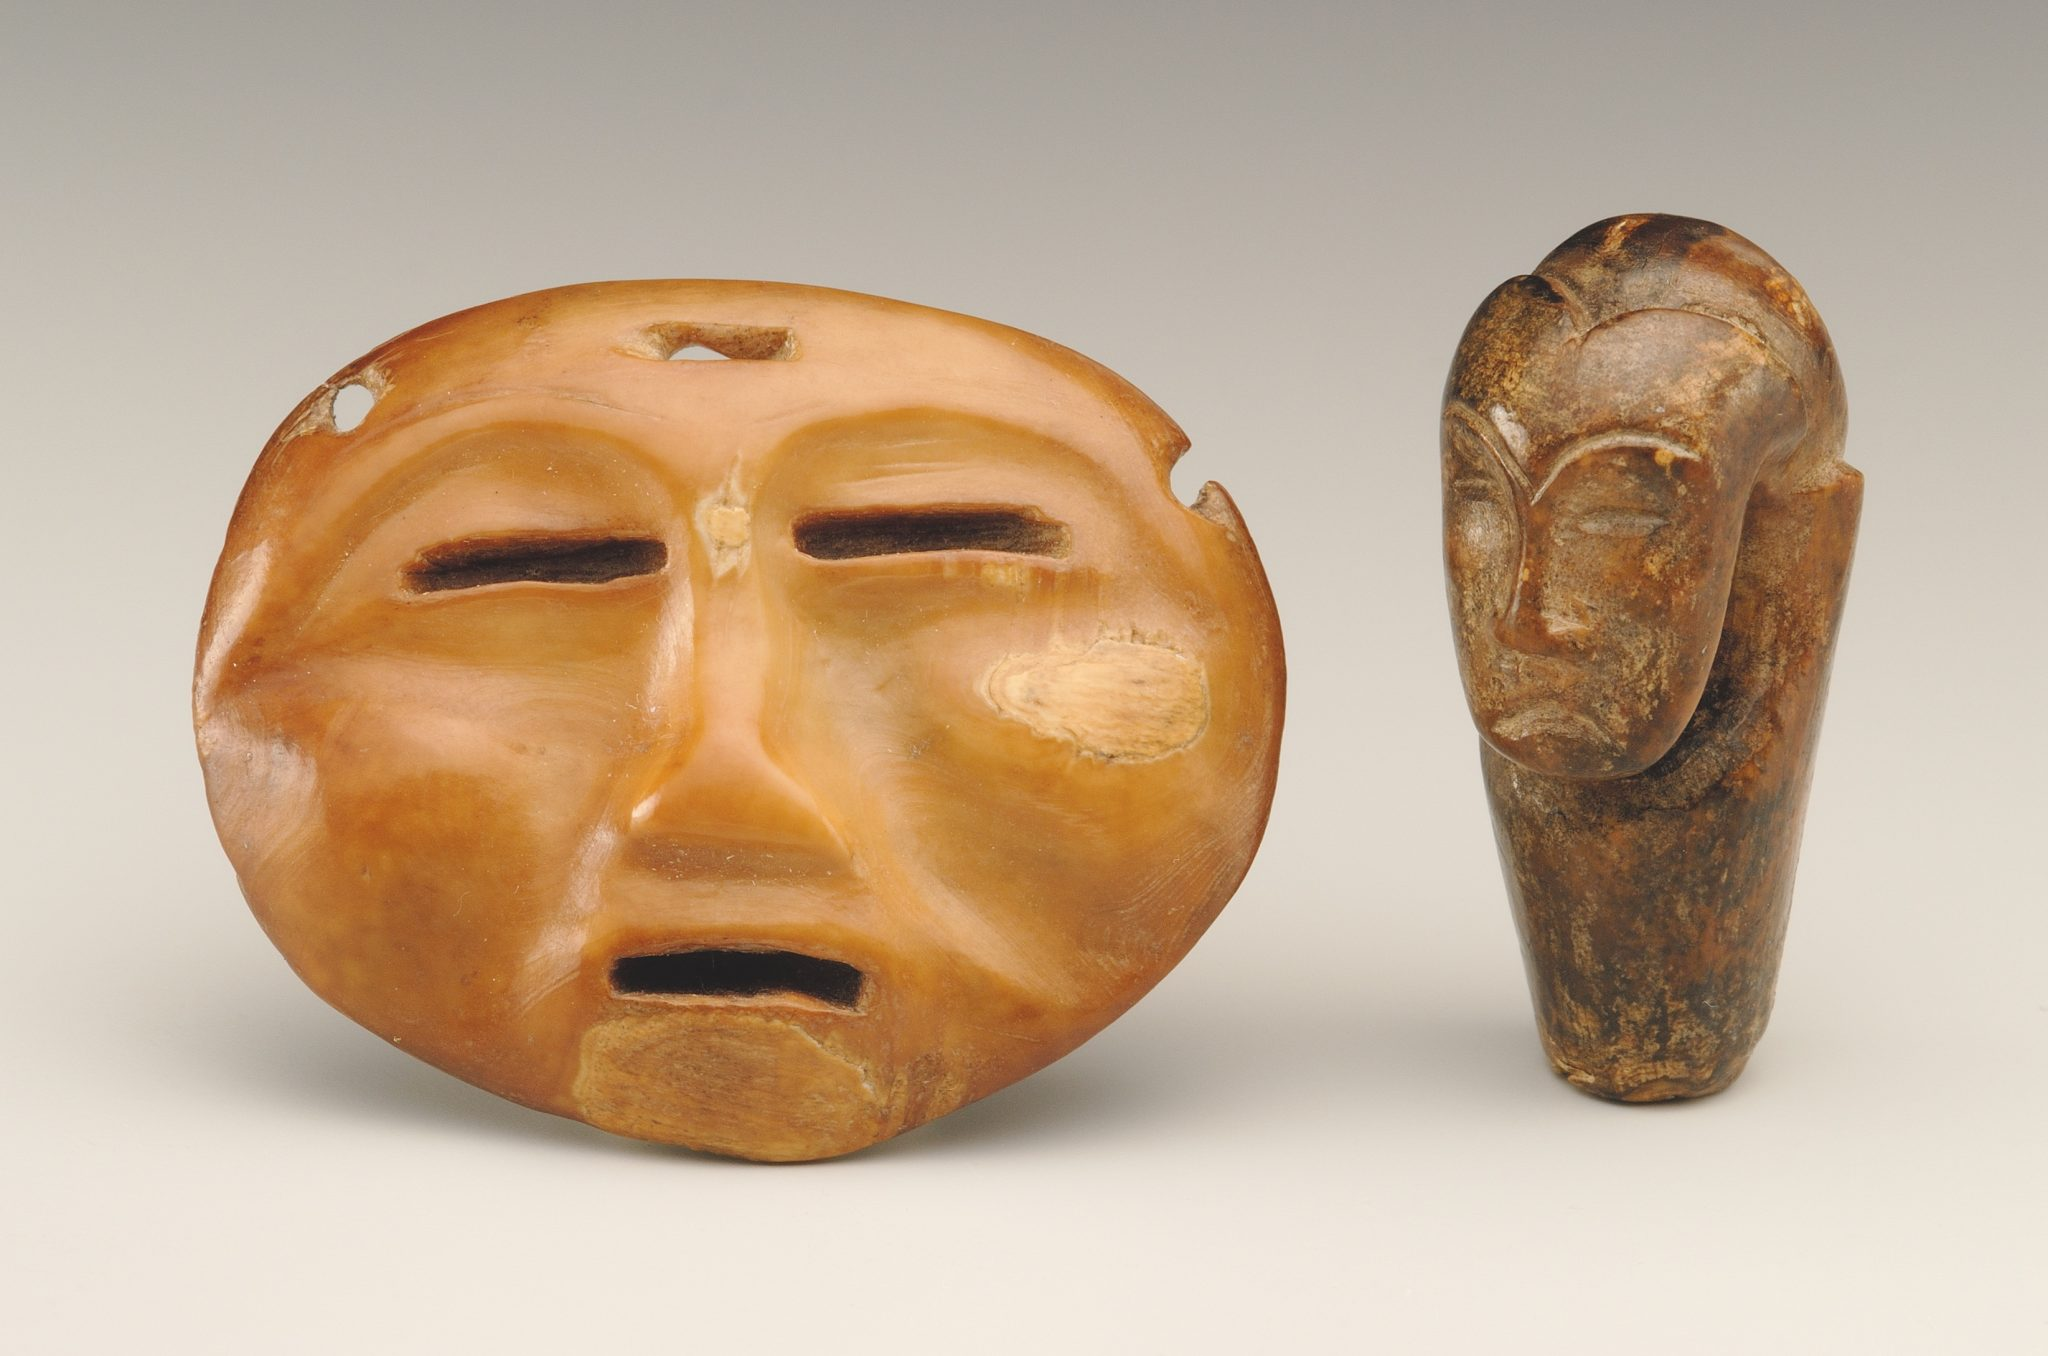 Mask-like object and janiform pendant (?) from the ancient Eskimo burial site Ekven (Old Bering Sea culture, OBS II). Material: walrus tusk. State Museum of Oriental Art, Moscow (photo Ye. Zheltov)